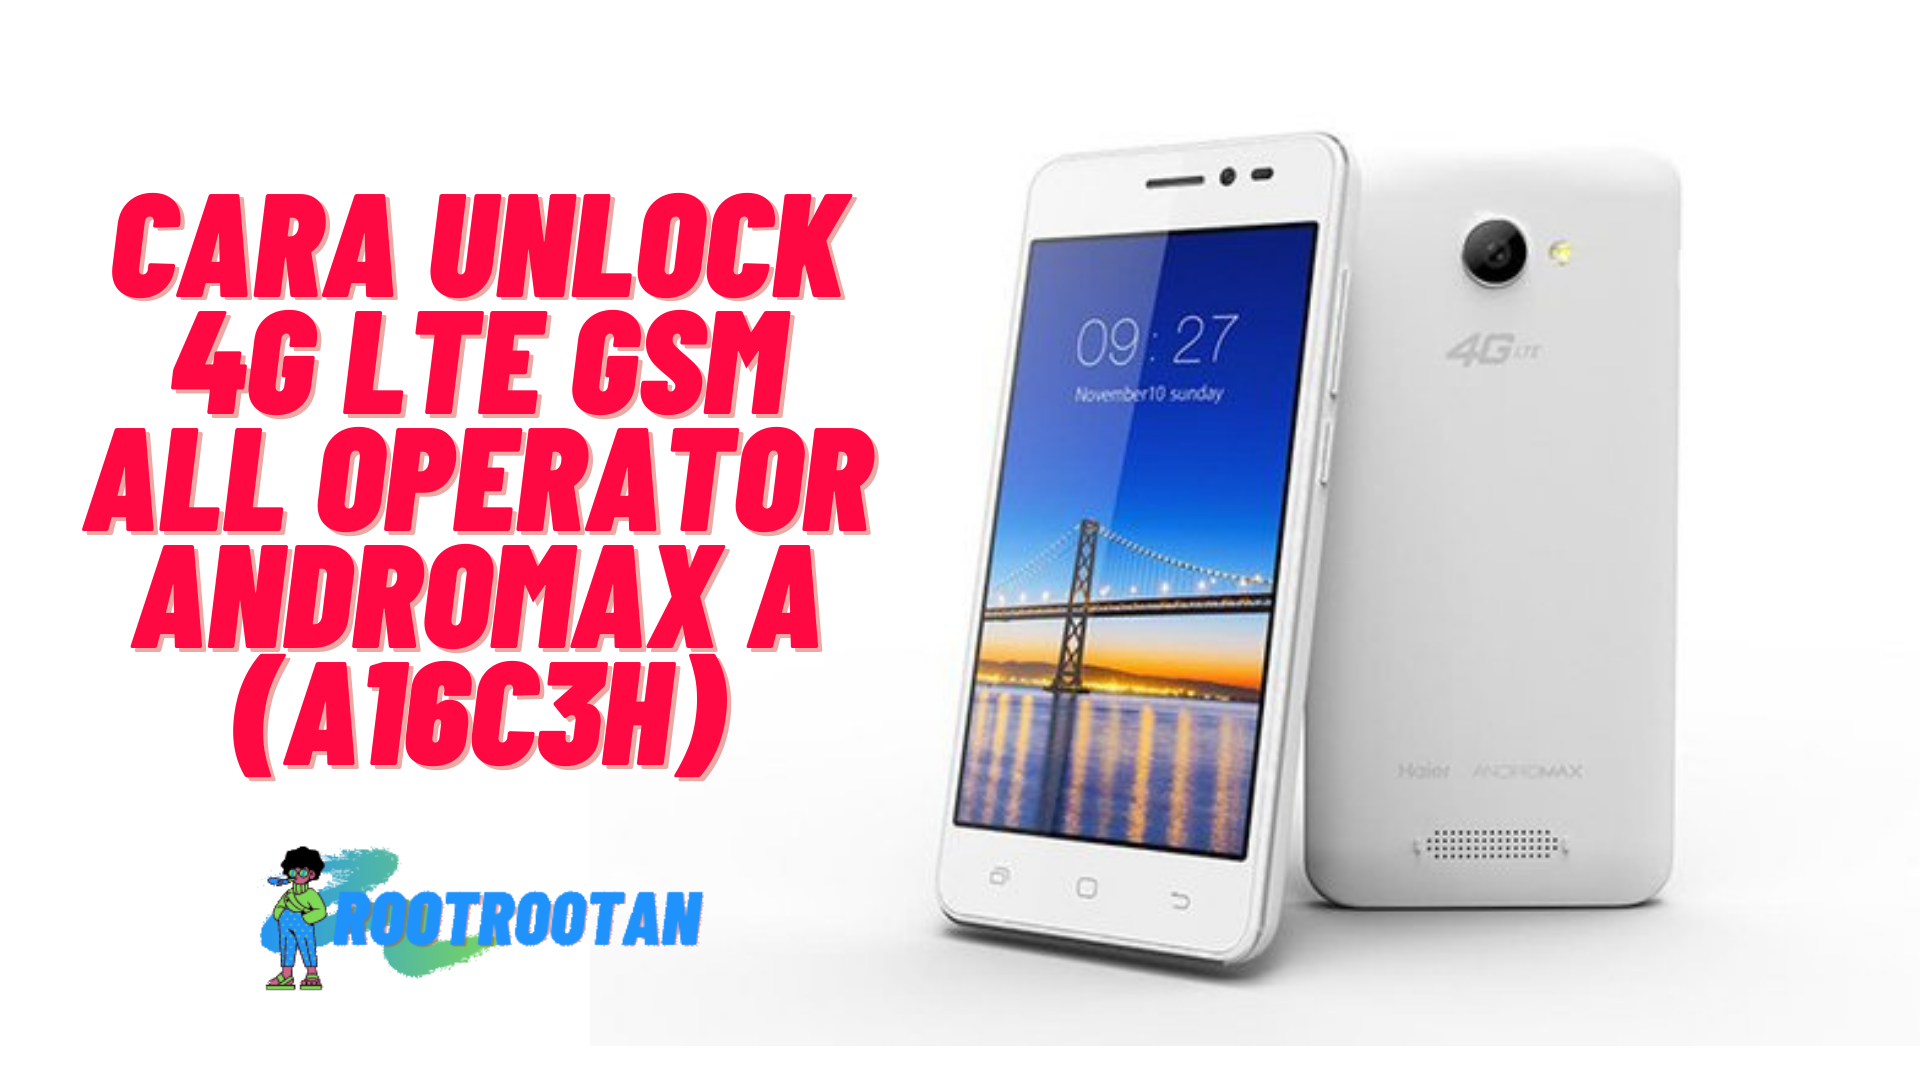 CARA UNLOCK 4G LTE GSM ALL OPERATOR Andromax A (A16C3H)